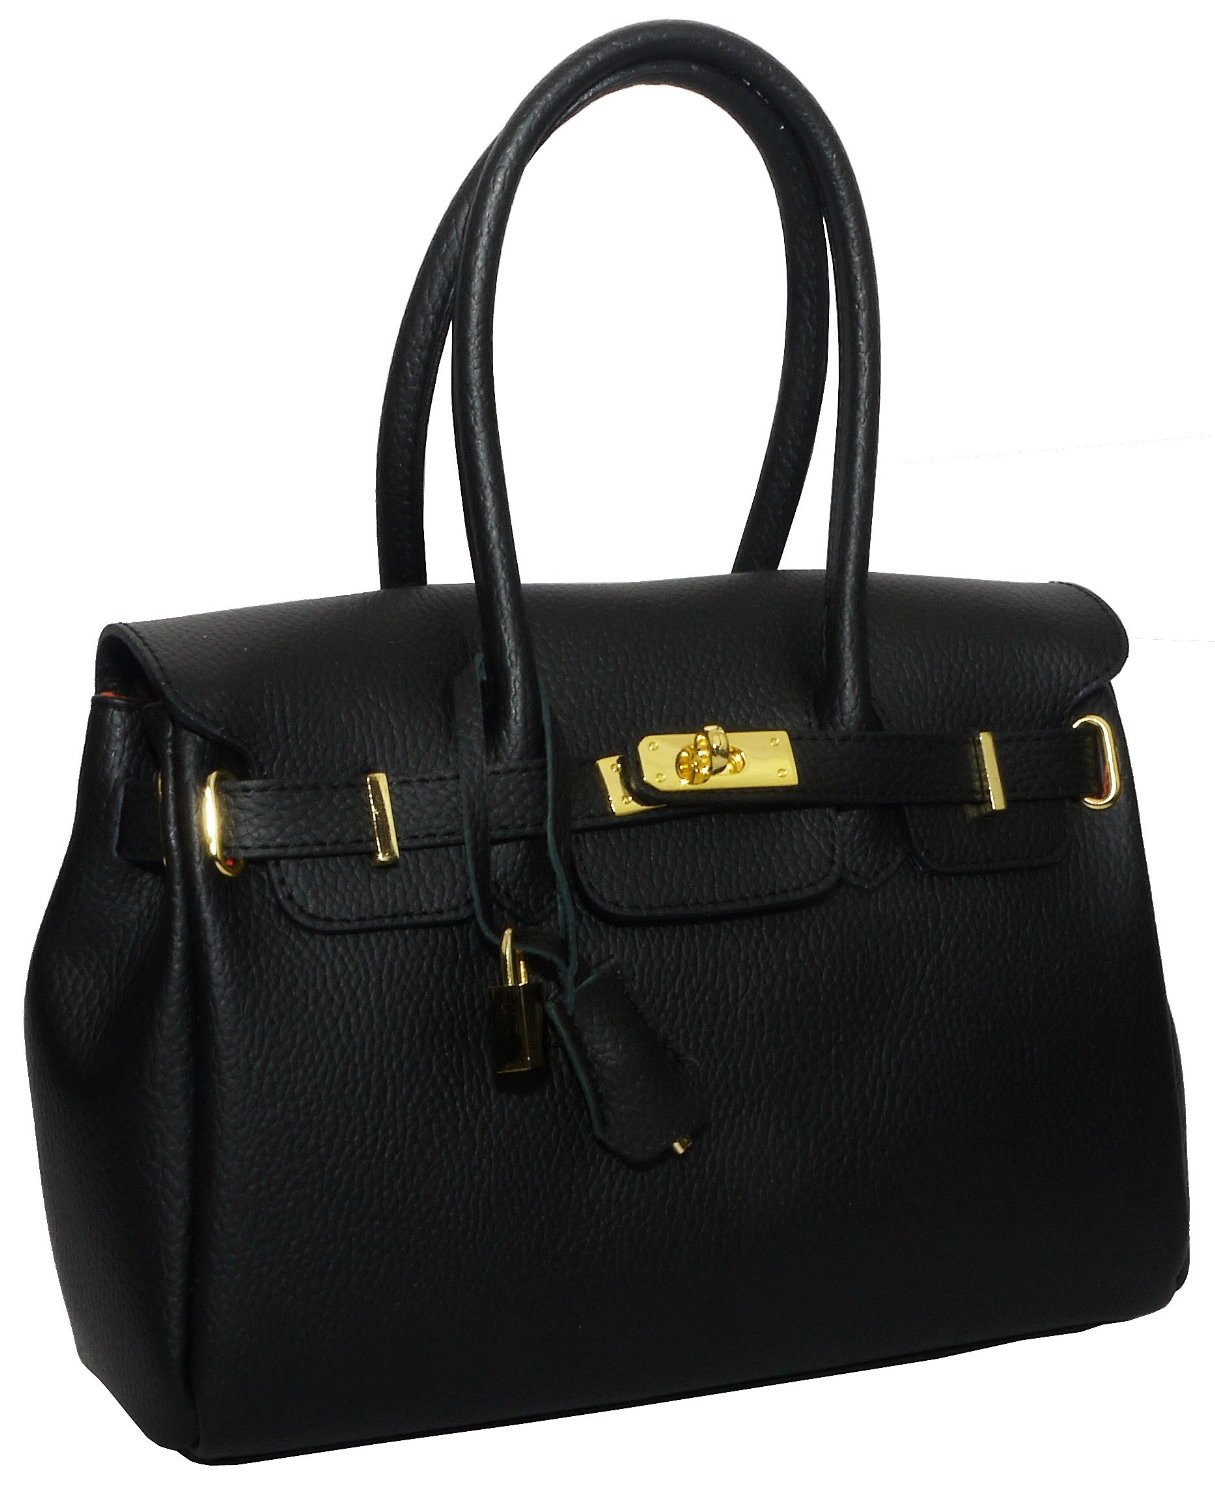 Real Italian Leather Black Hermes Birkin Kelly